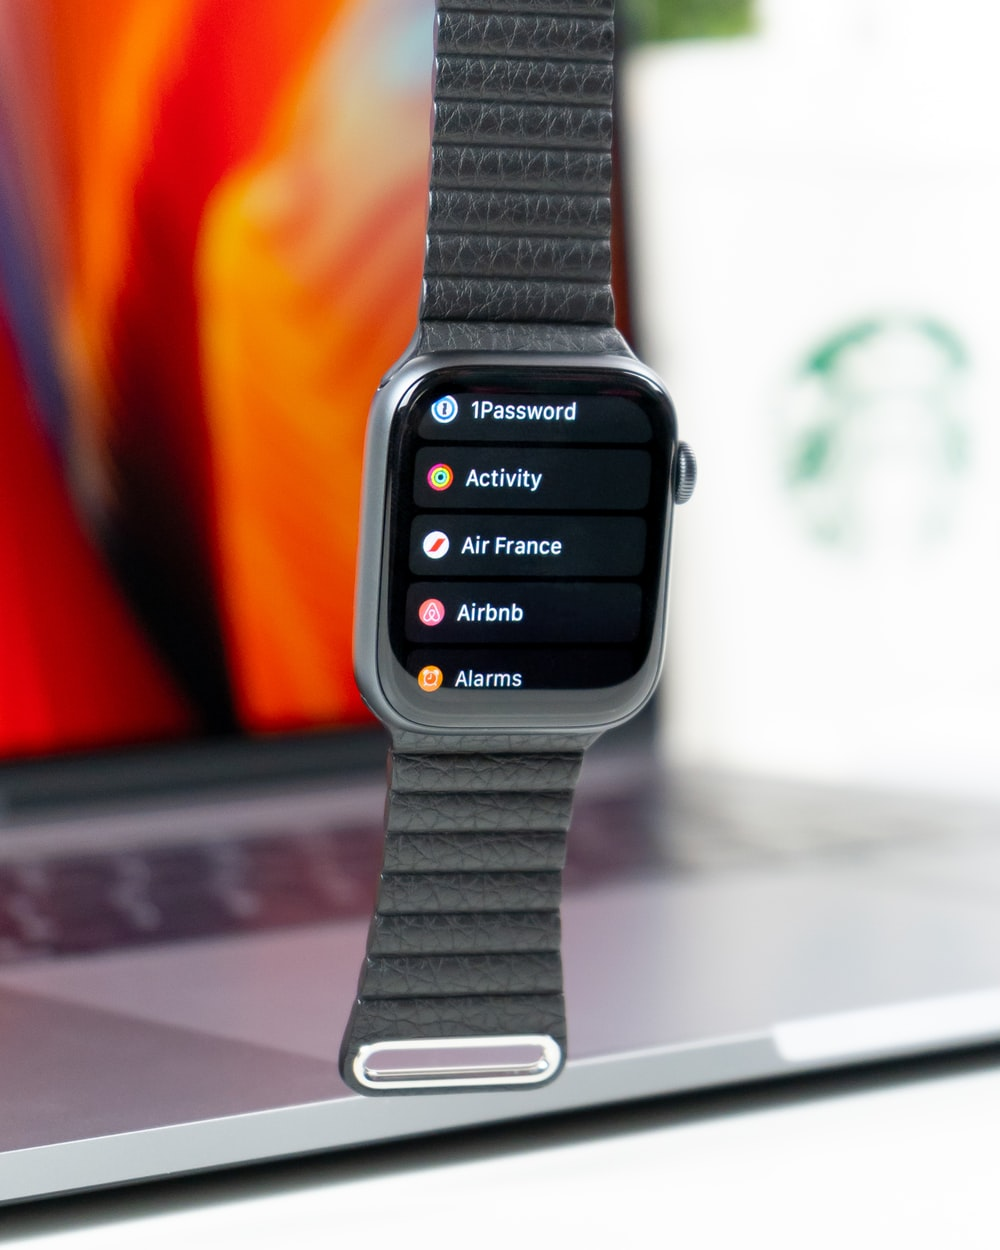 silver-colored smartwatch with band